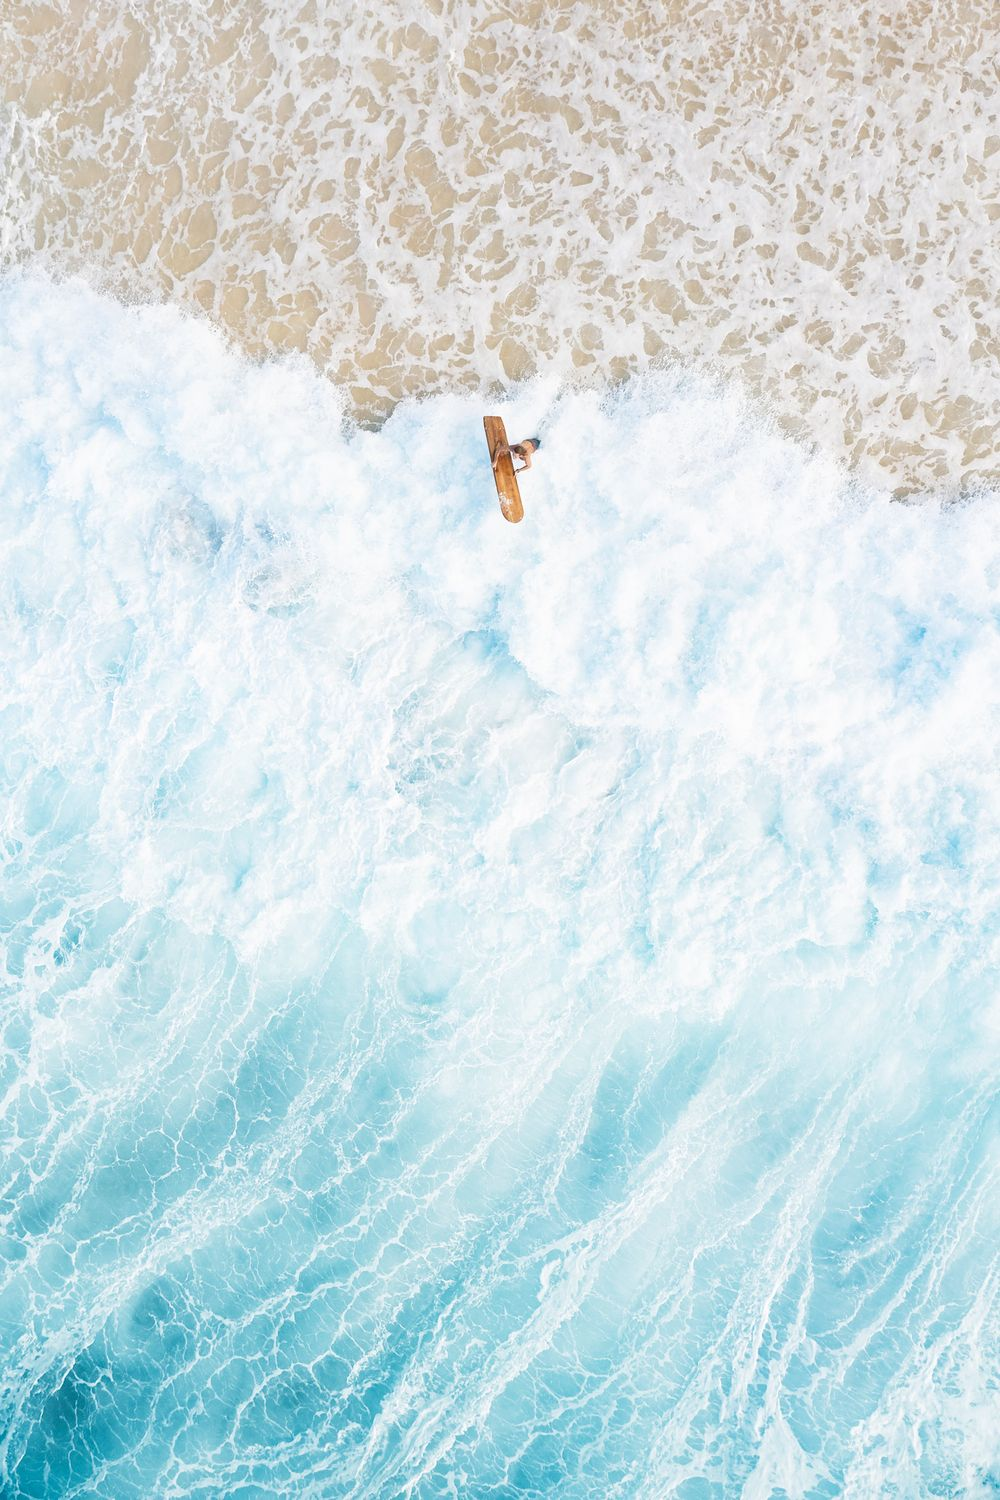 Swell-Endless-Blue-Drew-Doggett-Into-the-Blue.jpg